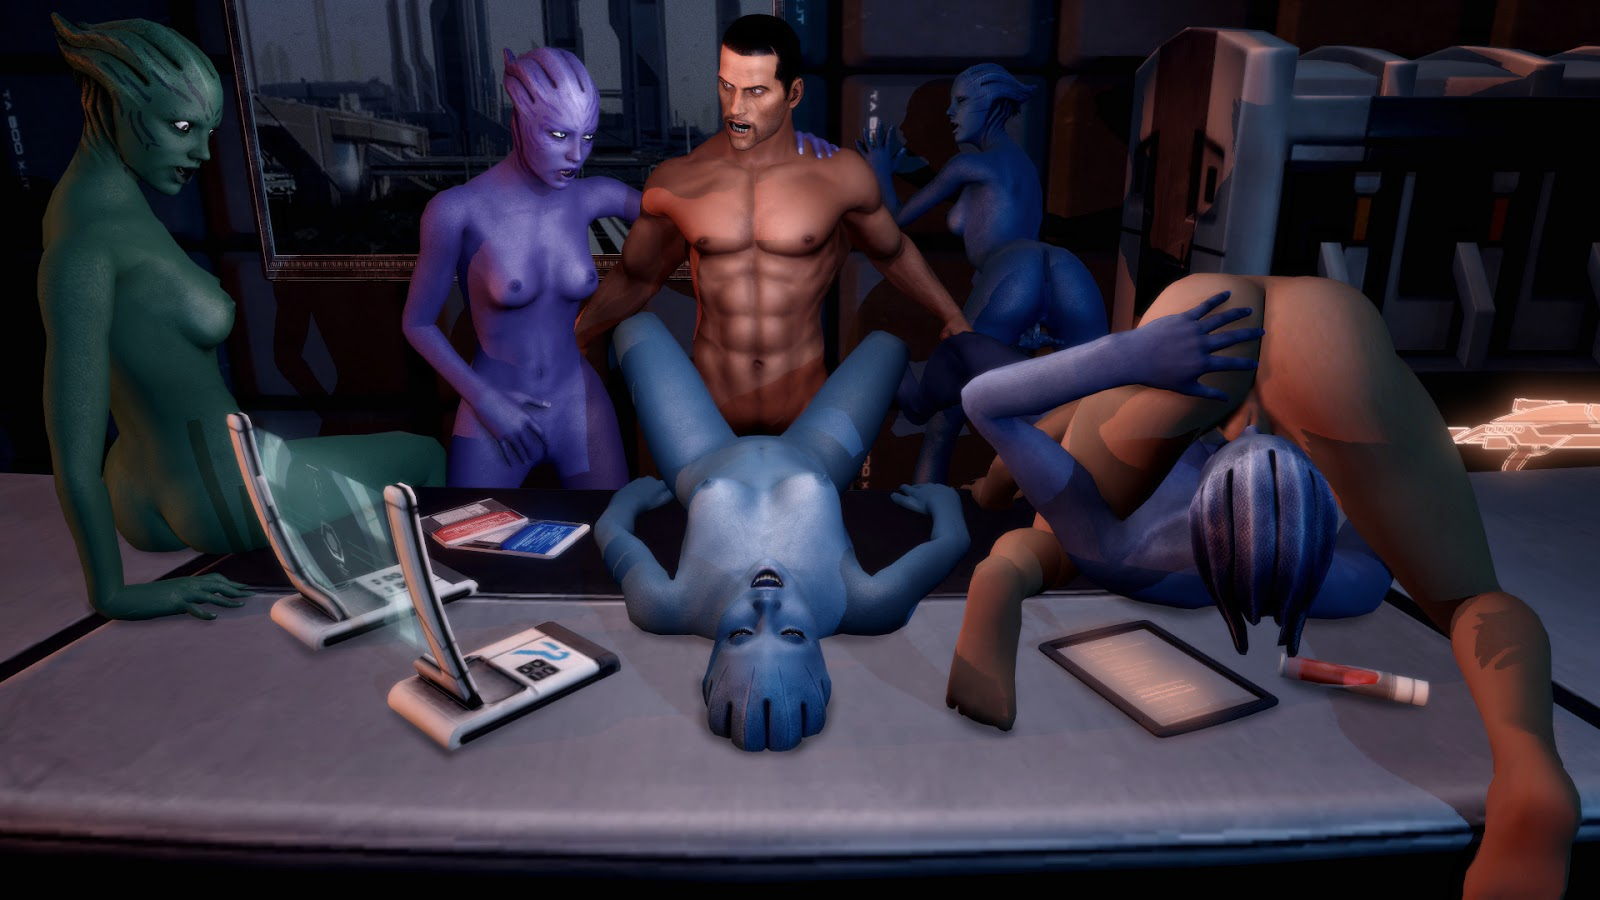 Mass effect porn videos free to download sexy picture